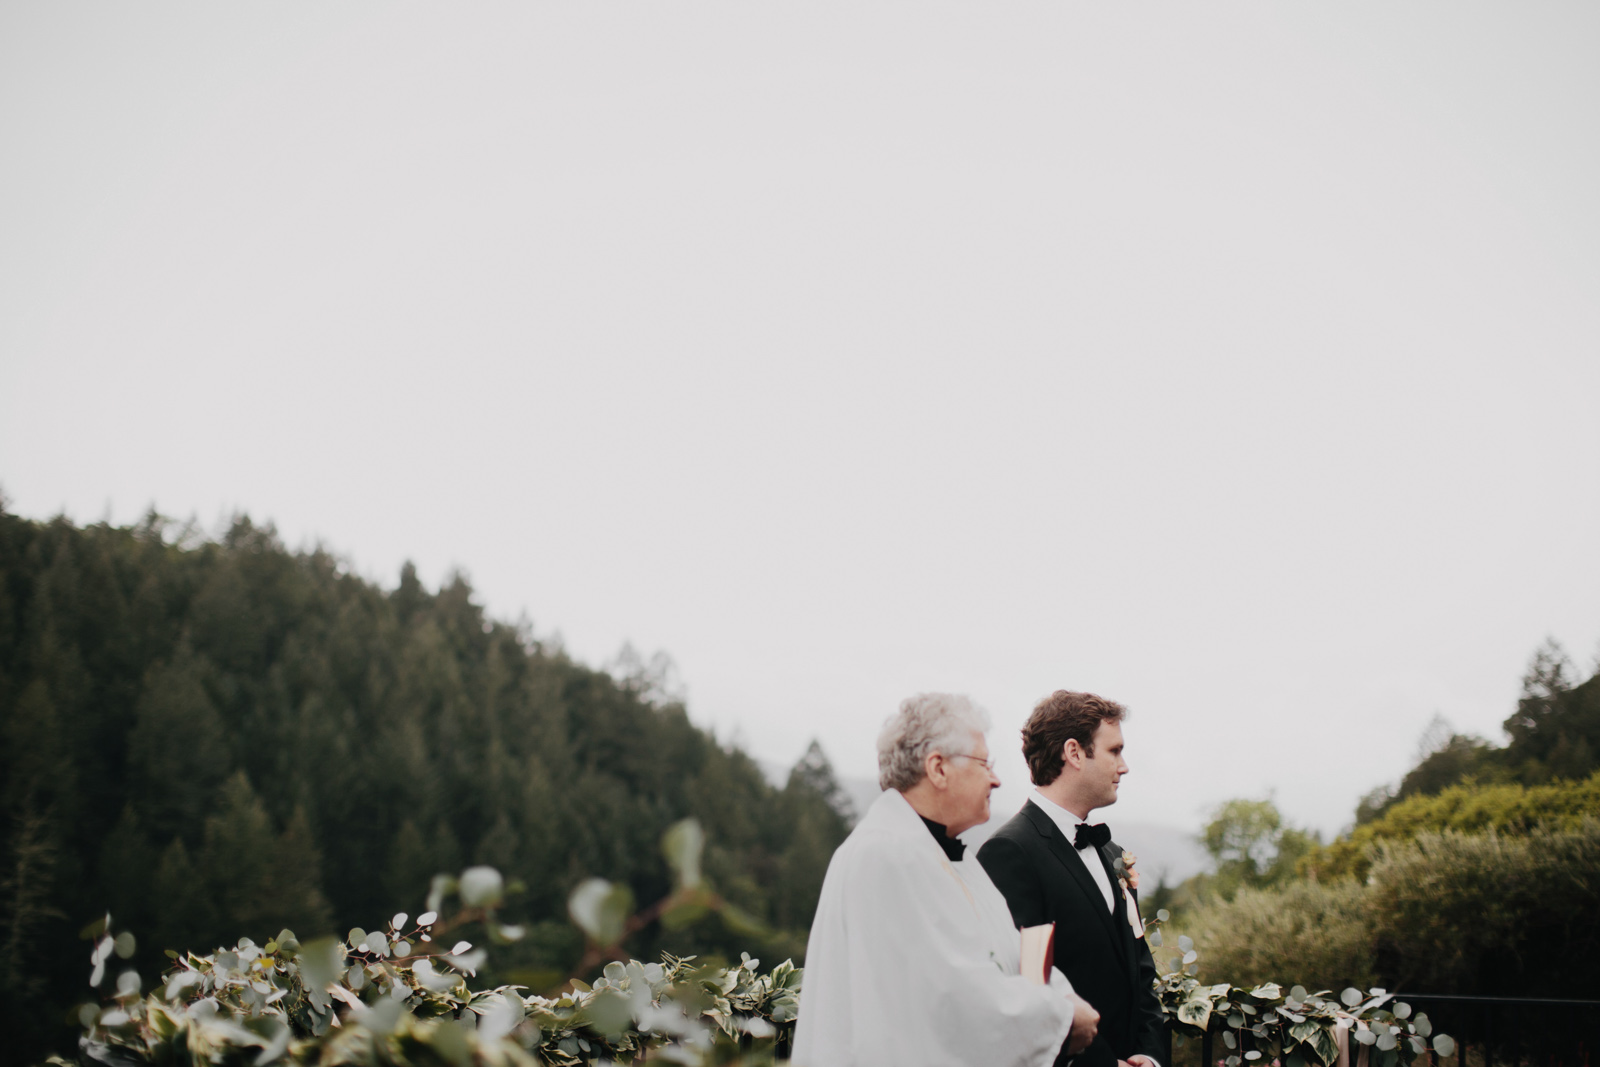 San Francisco - Napa Valley Wedding Photographer - For the Love of It-008.jpg